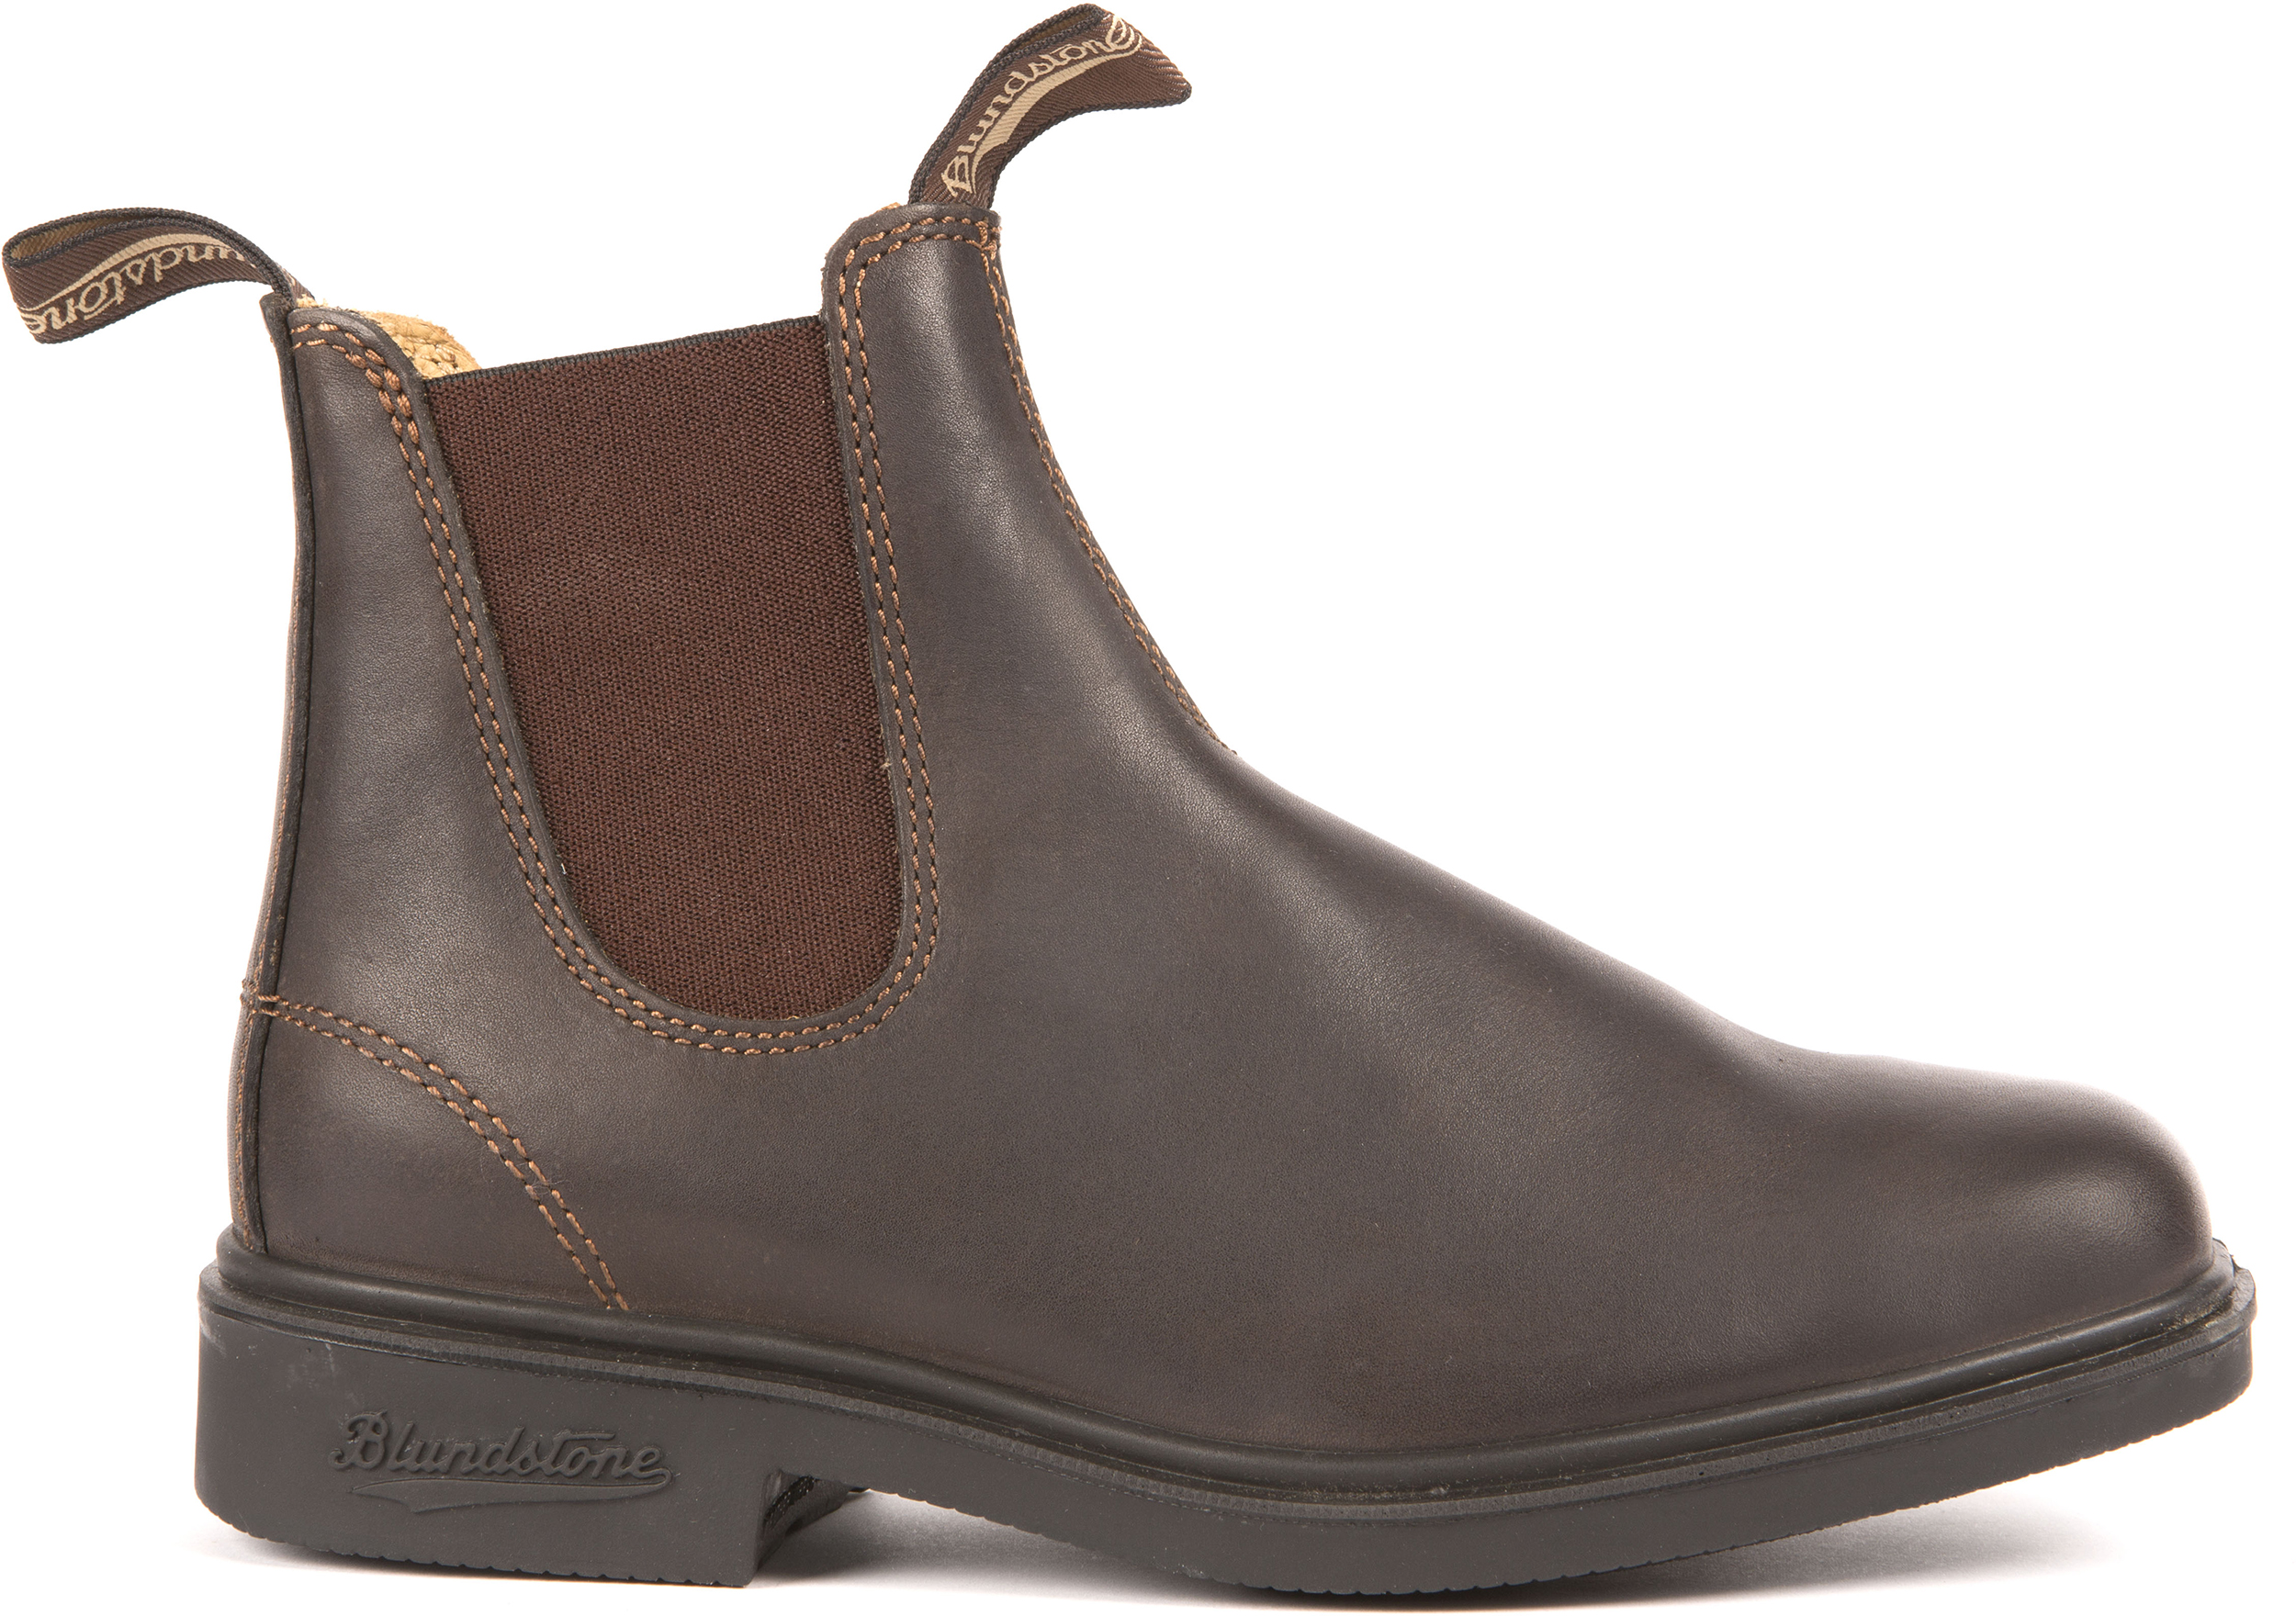 big clearance sale select for authentic best choice Blundstone Chisel Toe 067 - Unisex